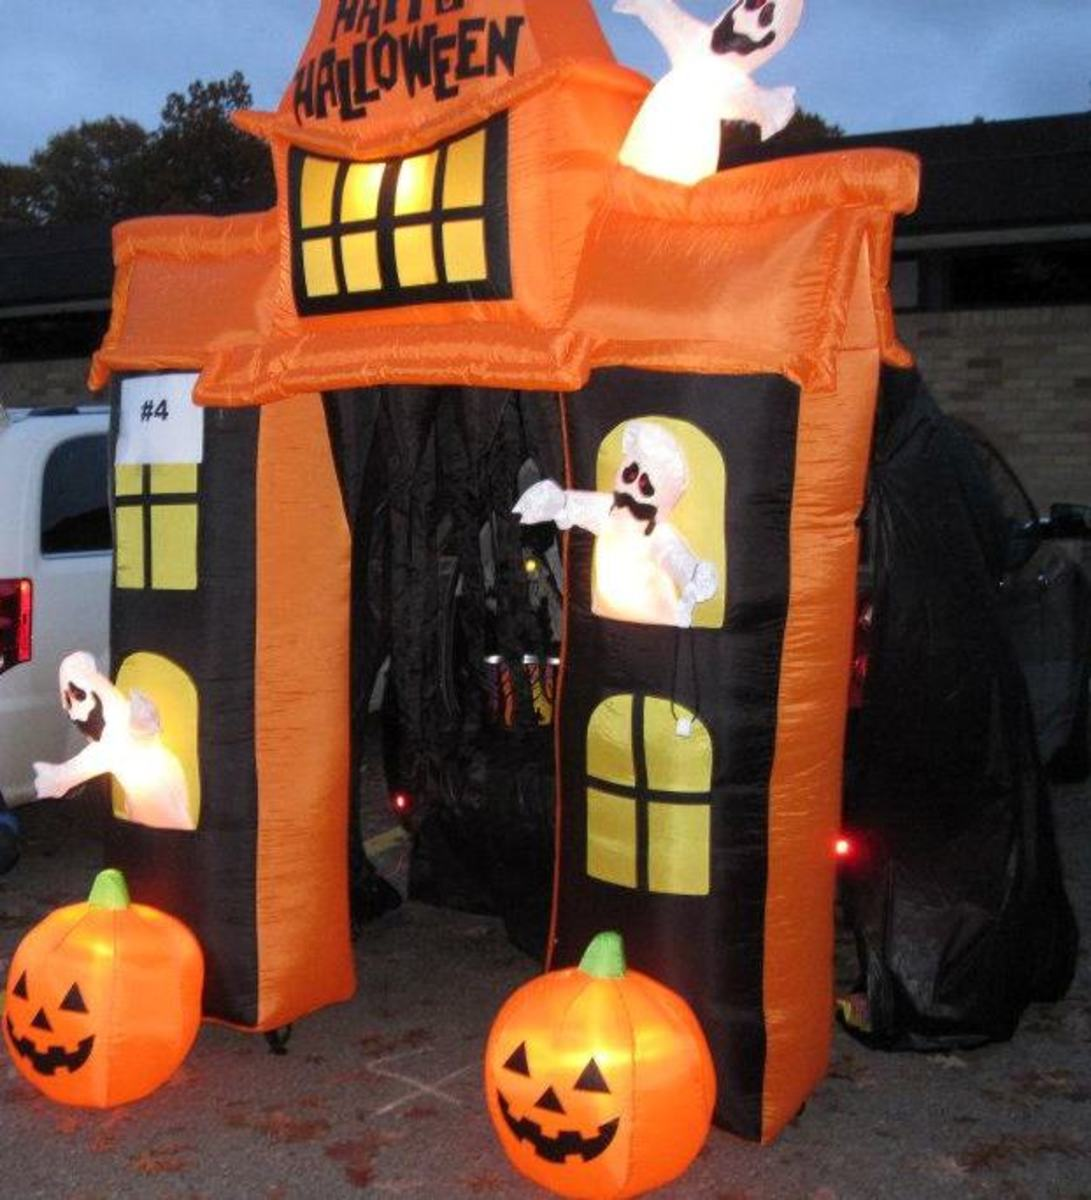 A Halloween blow-up haunted mansion archway placed in front of the trunk was the kids' favorite at this Trunk or Treat!